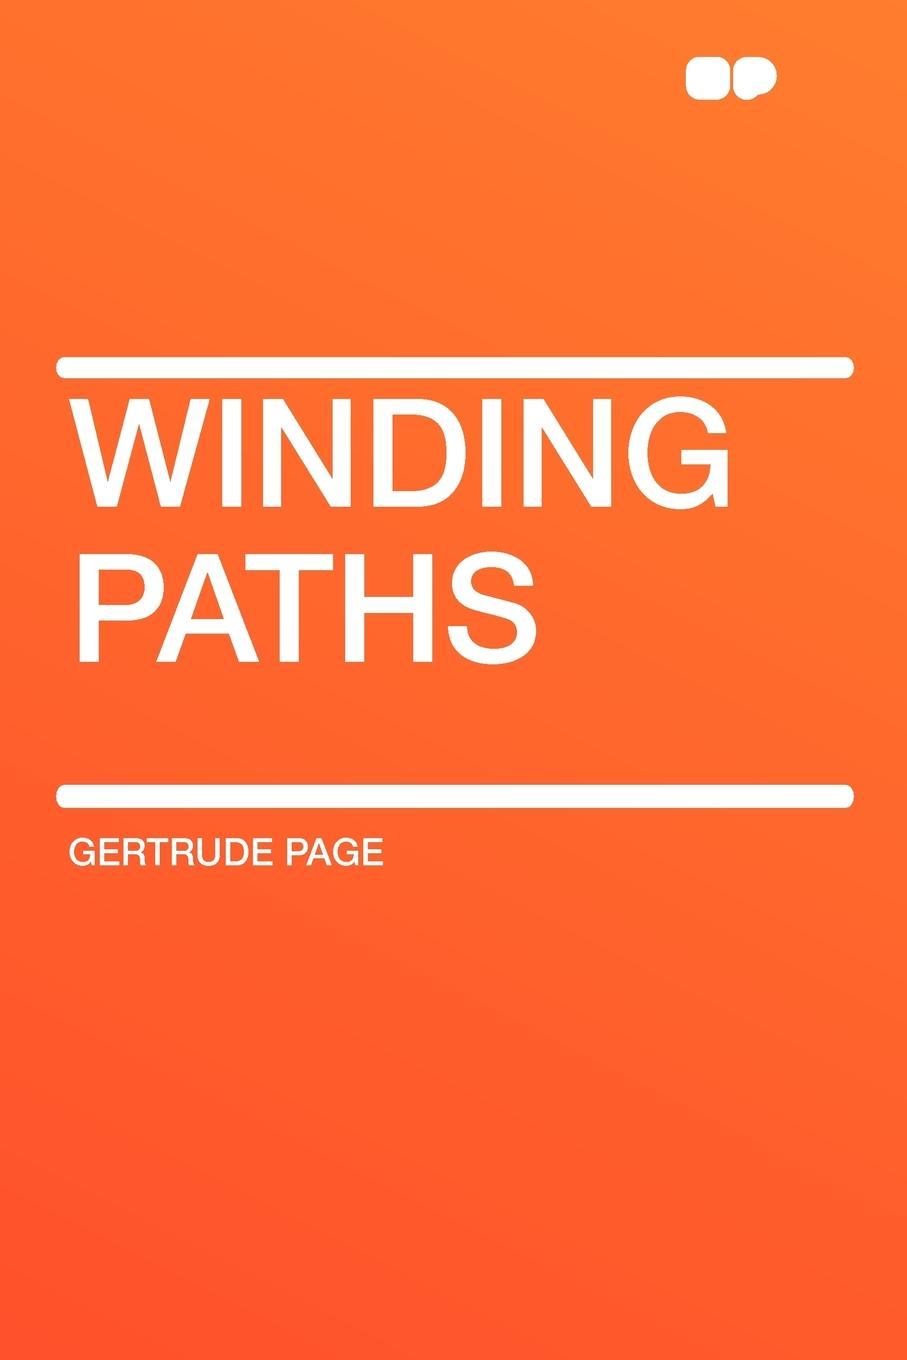 Gertrude Page Winding Paths gertrude page winding paths